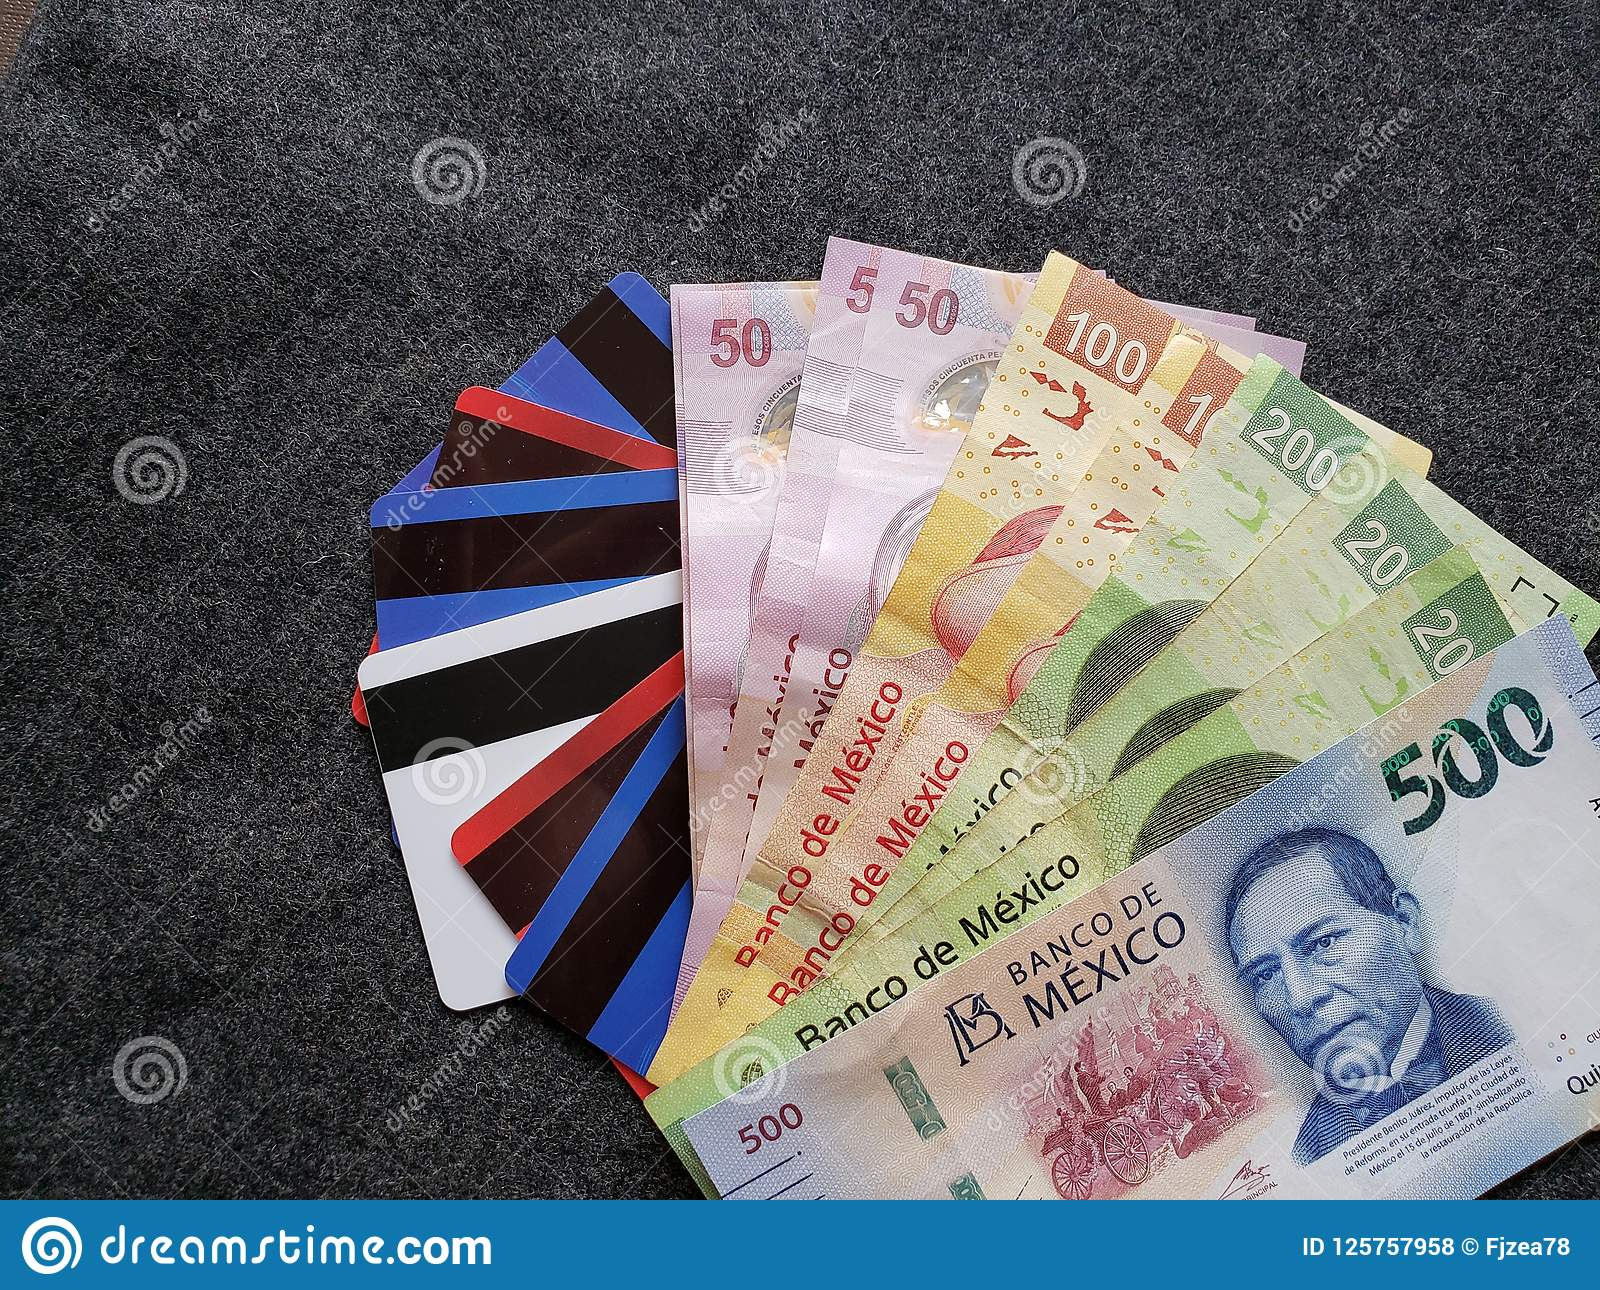 nowadays plastic money replaced by paper money discuss the advantages and disadvantage of this